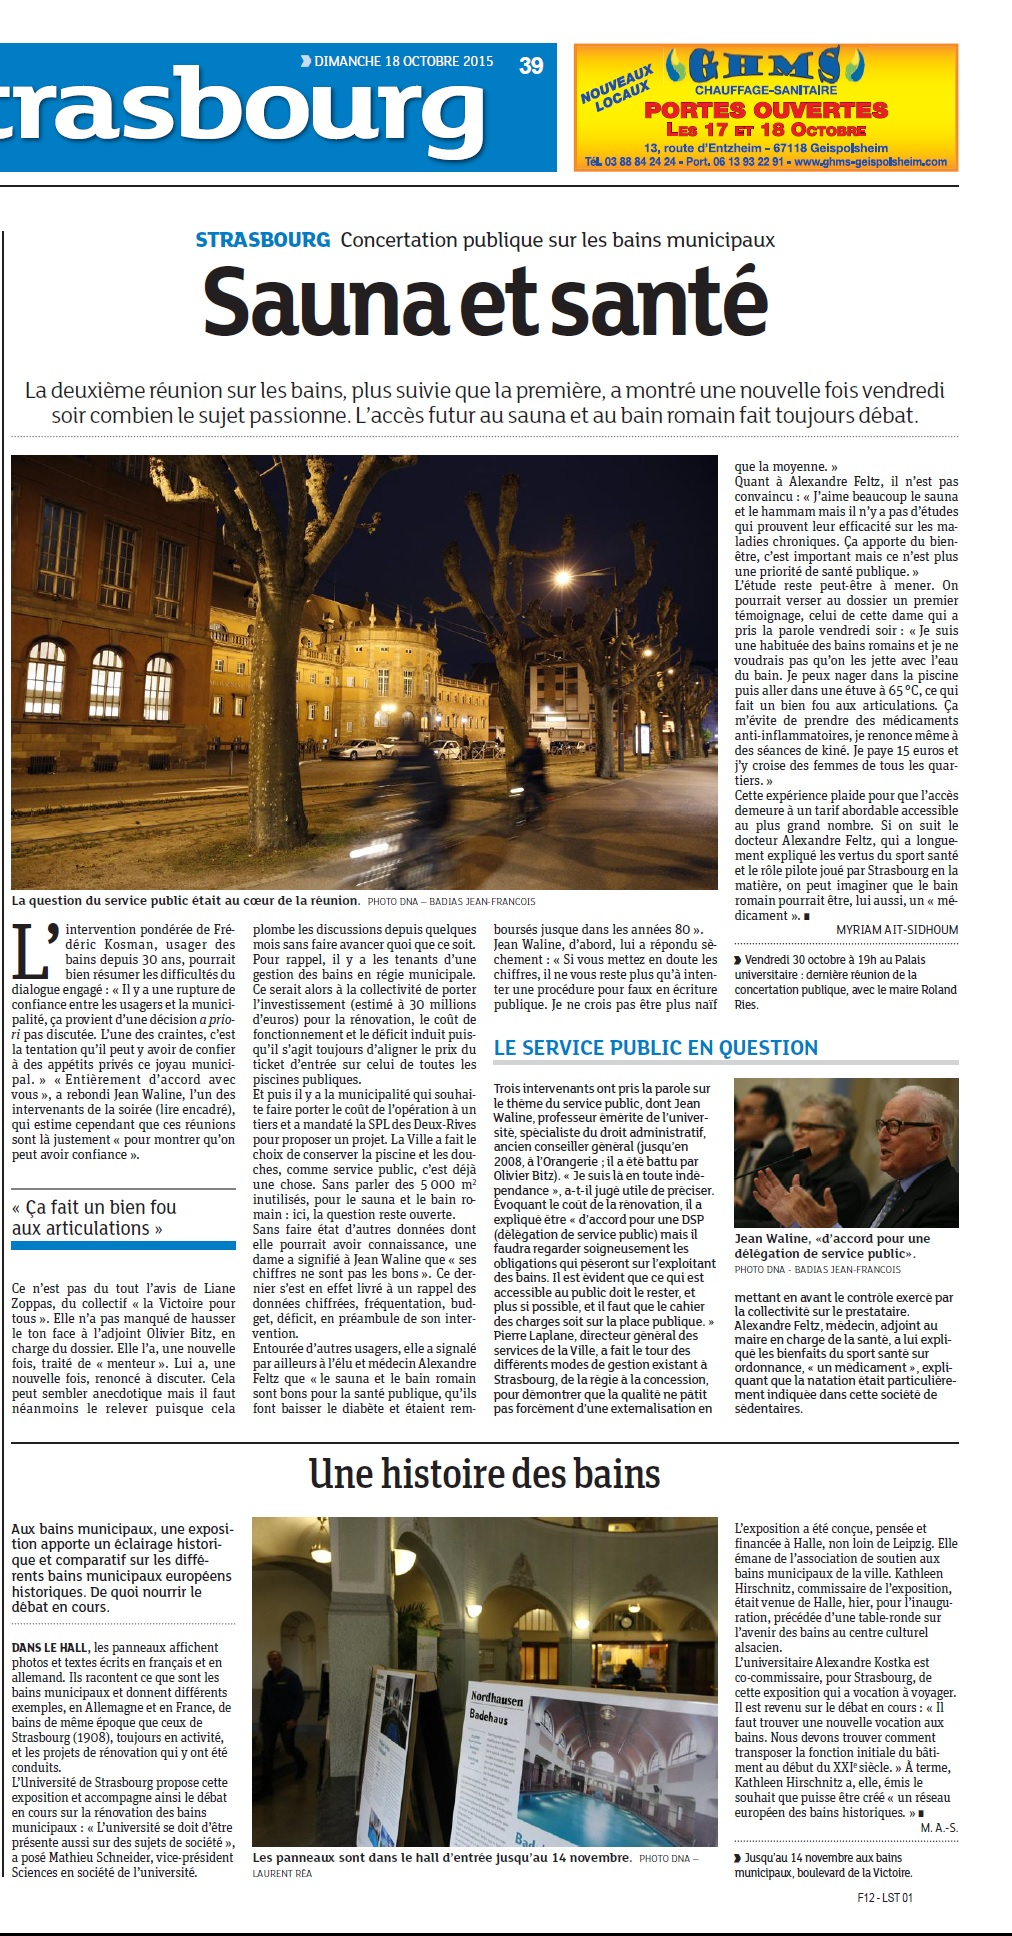 DNA - 18 octobre 2015